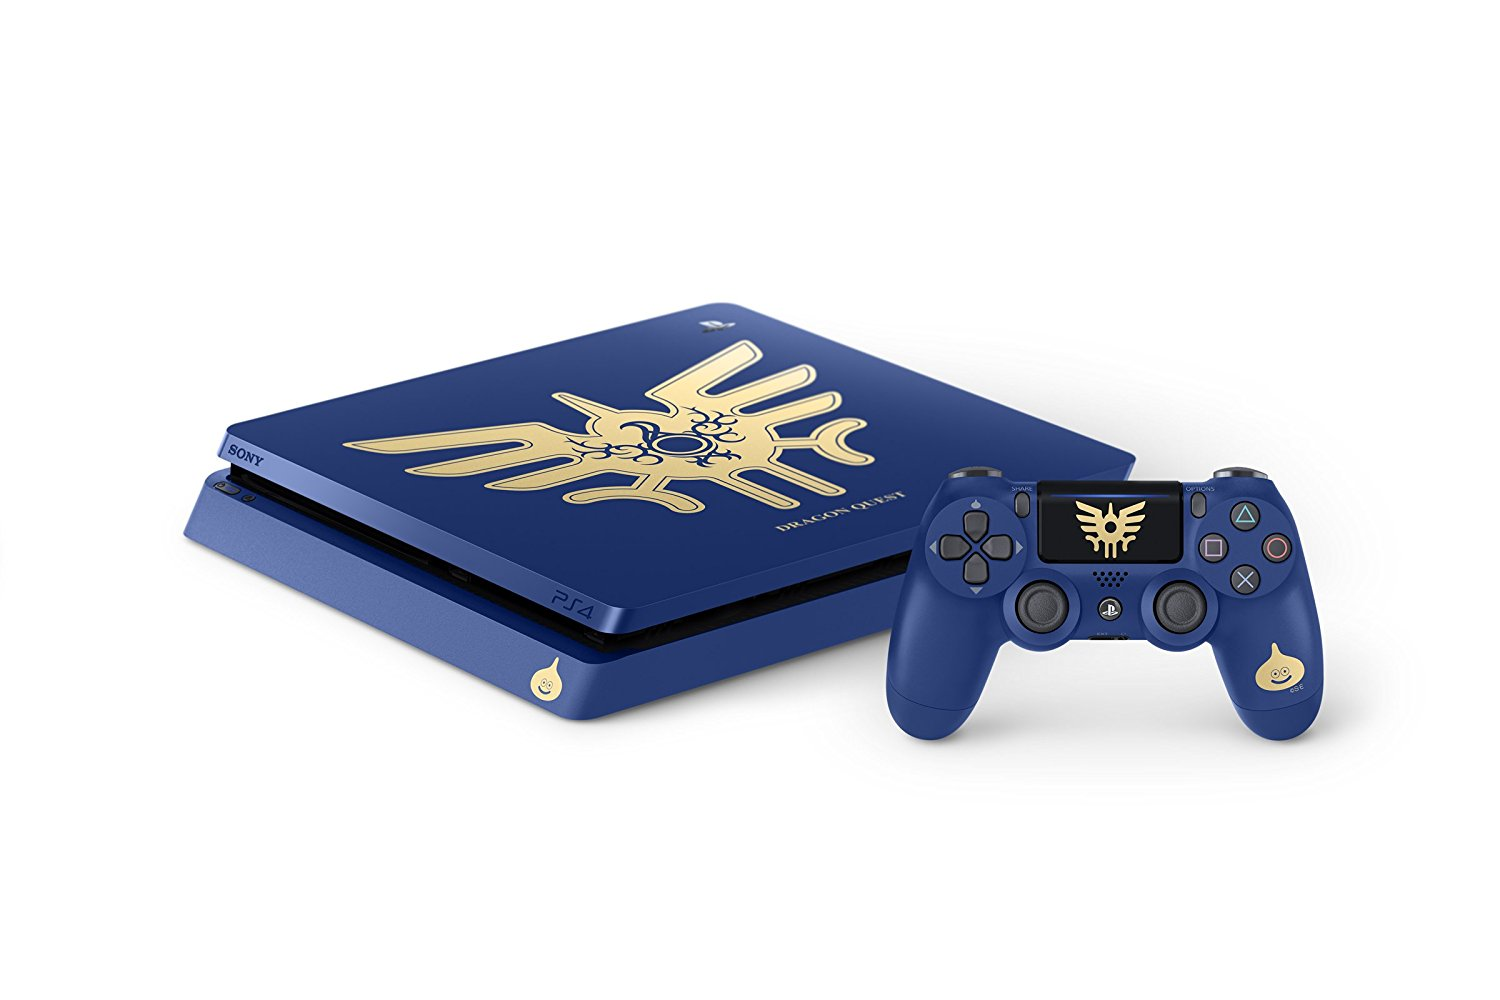 Playstation 4 dragonquest roto edition 2